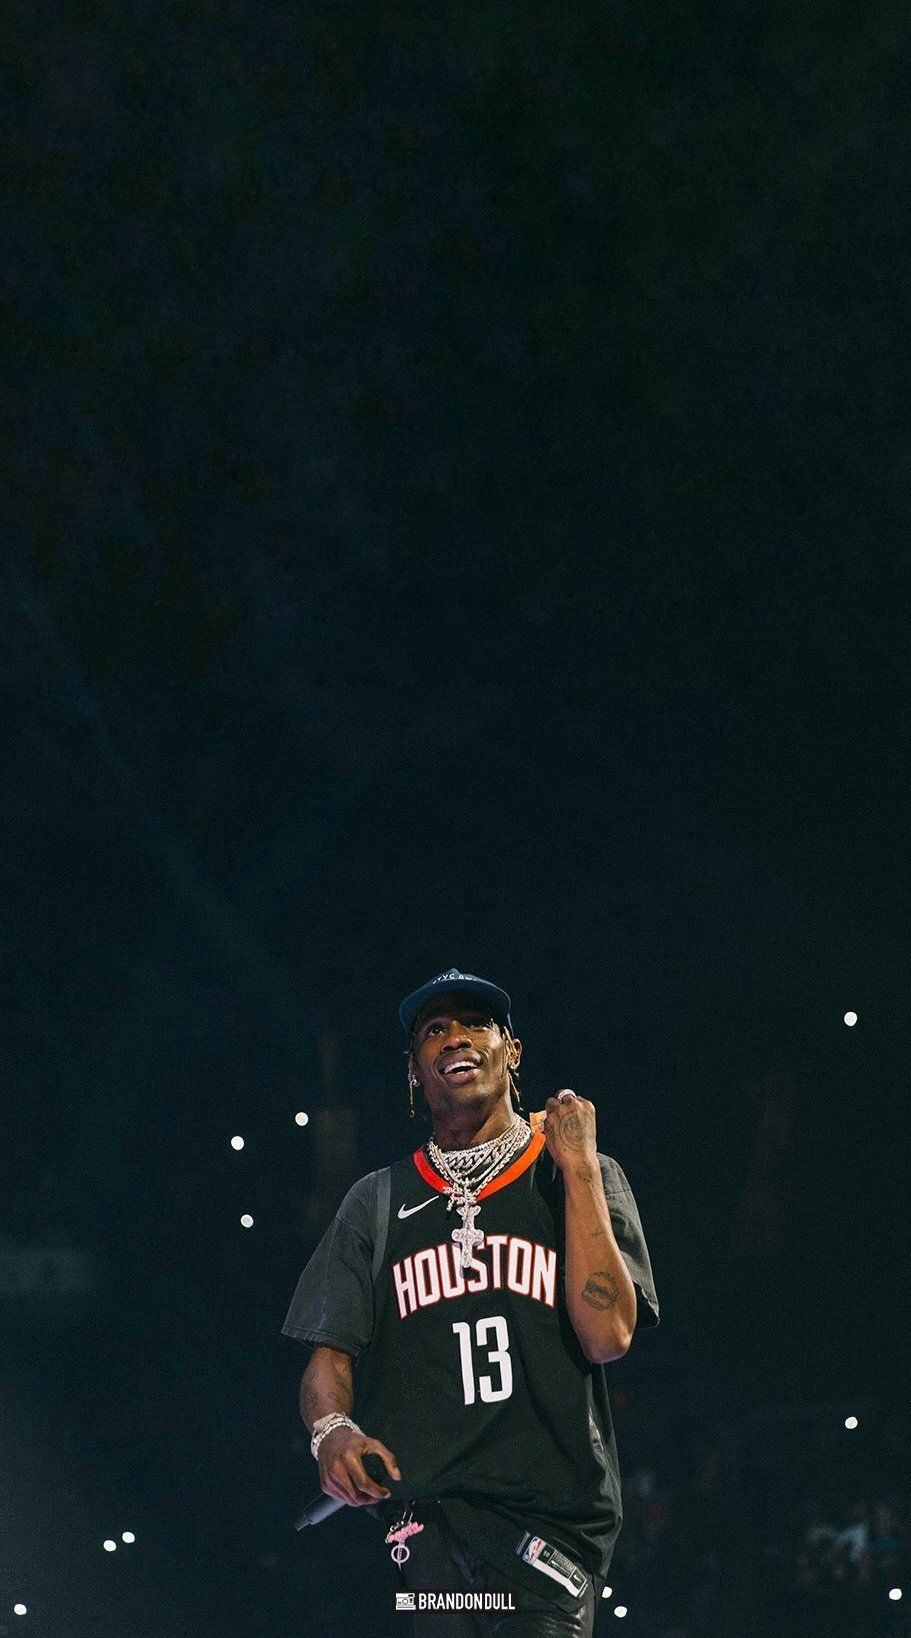 Pin By Kaktus Dzhek On Wallpaper In 2020 Travis Scott Iphone Wallpaper Travis Scott Wallpapers Travis Scott Outfits